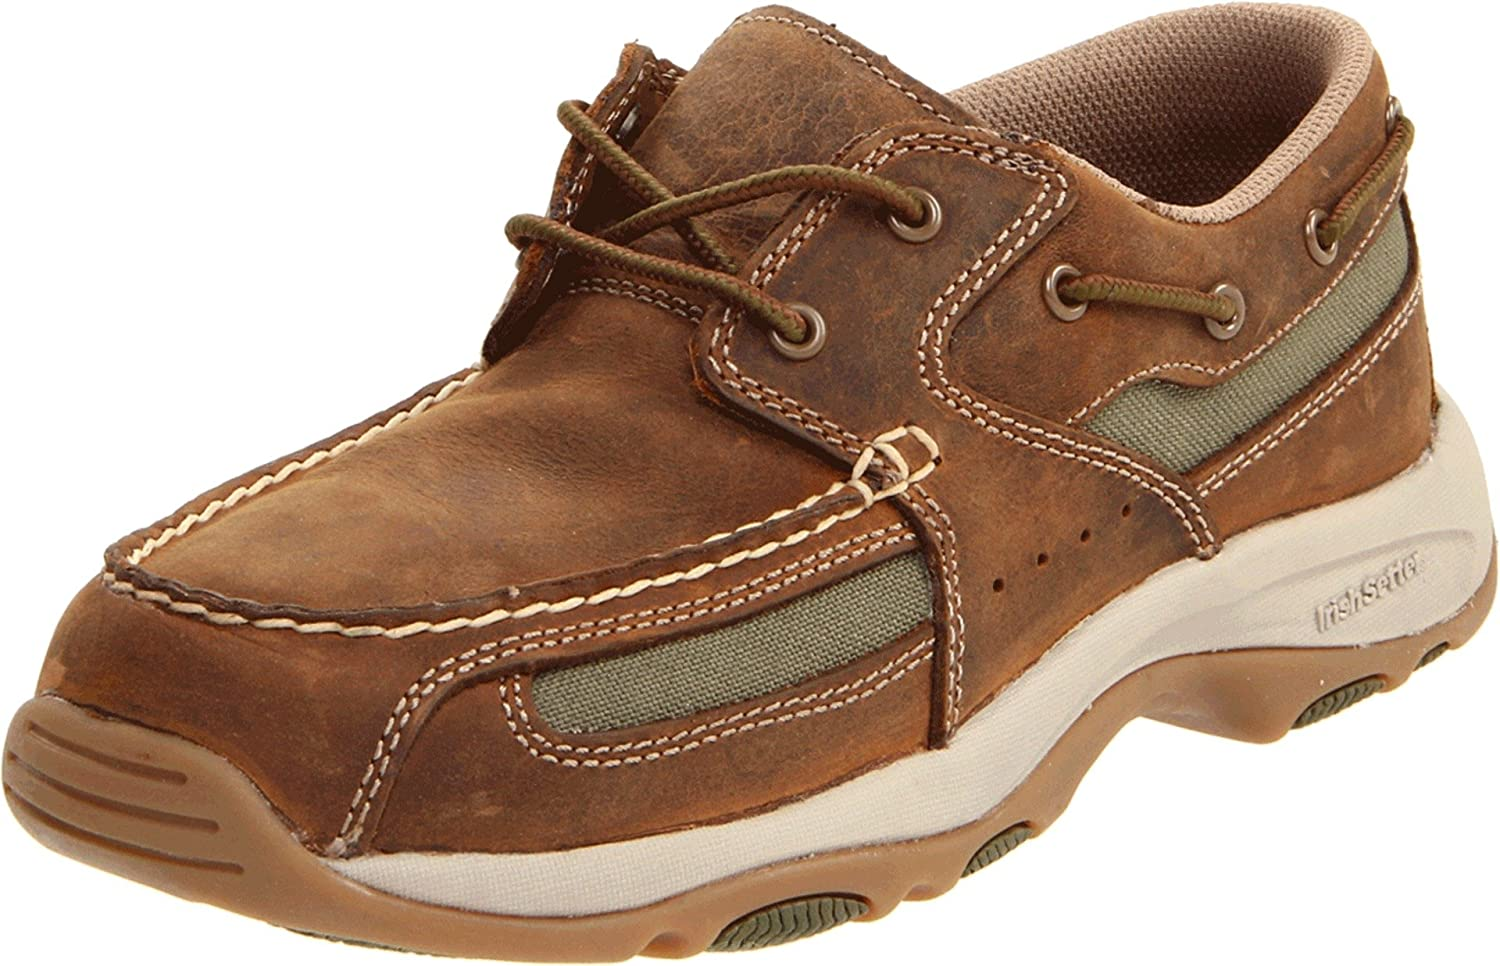 Irish Setter Men's 3819 Lakeside Slip-On Boat Shoe Lakeside 3819-M